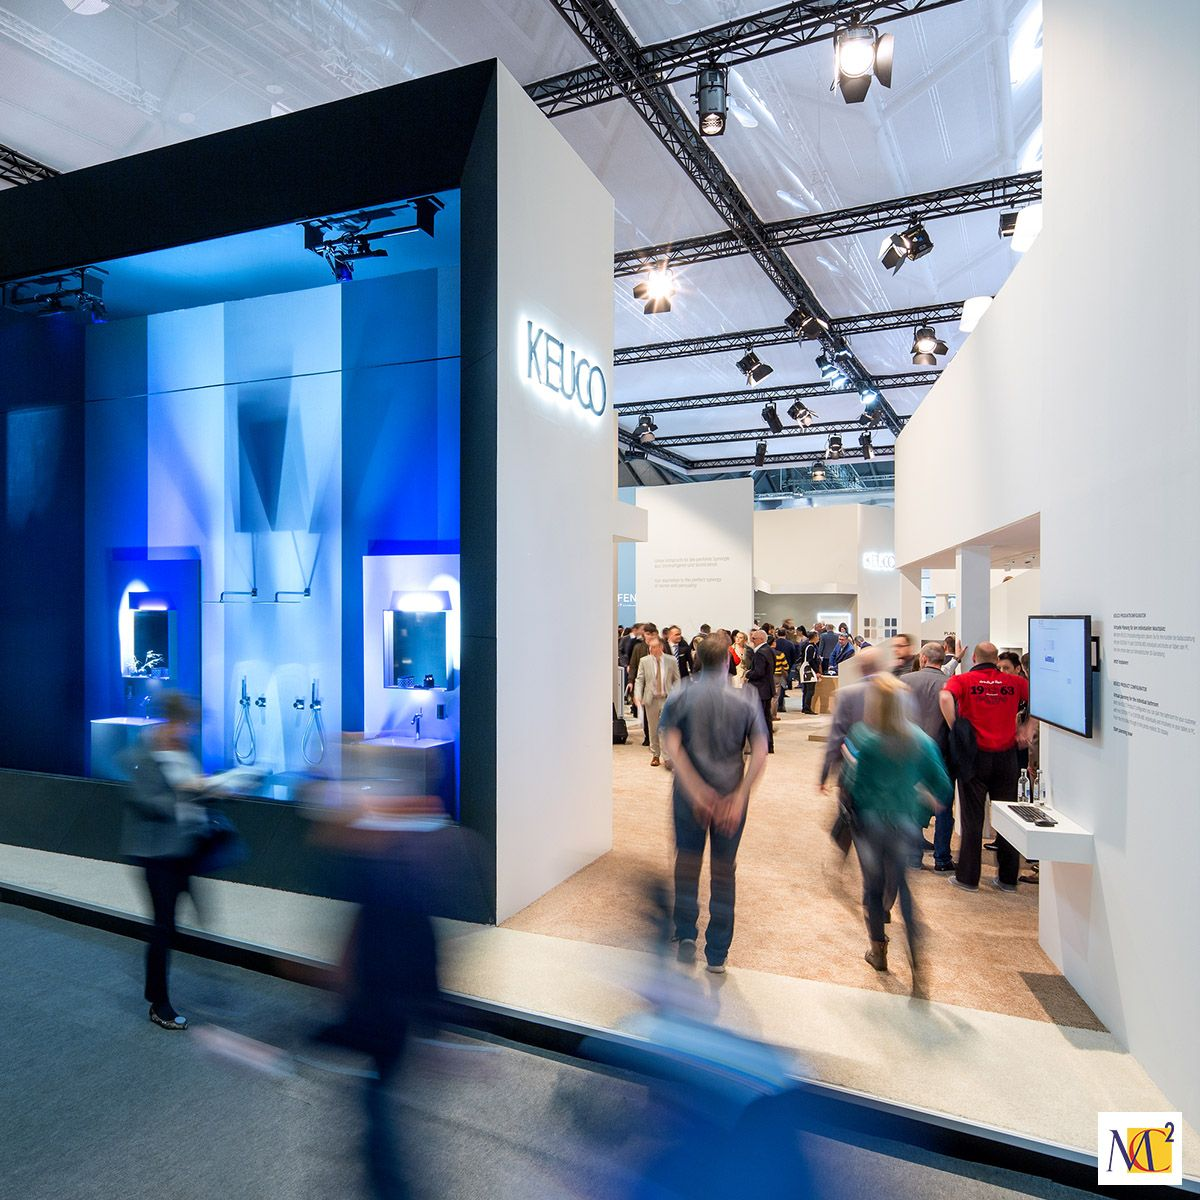 Mc2 Europe Designed A Sculptural Display For Keuco At Ish In Frankfurt Germany Placing Their Quality Bathr Brand Experience Innovation Design Event Marketing